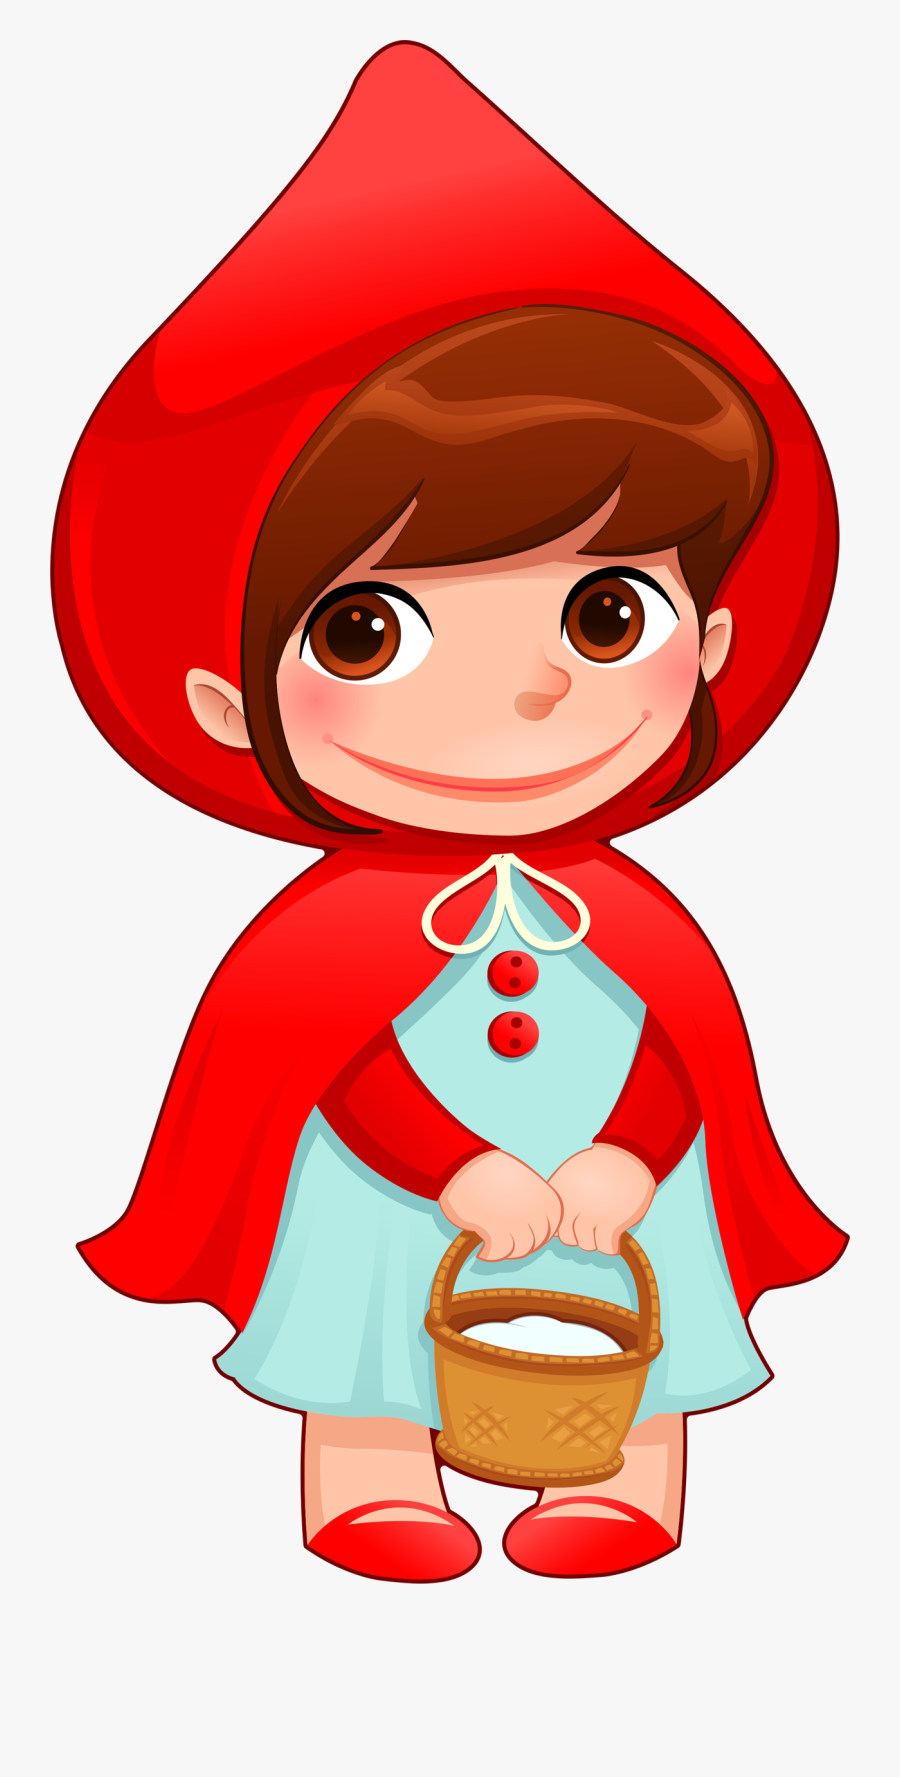 Little Red Riding Hood Transparent Background Png - Little Red Riding Hood Png, Transparent Clipart